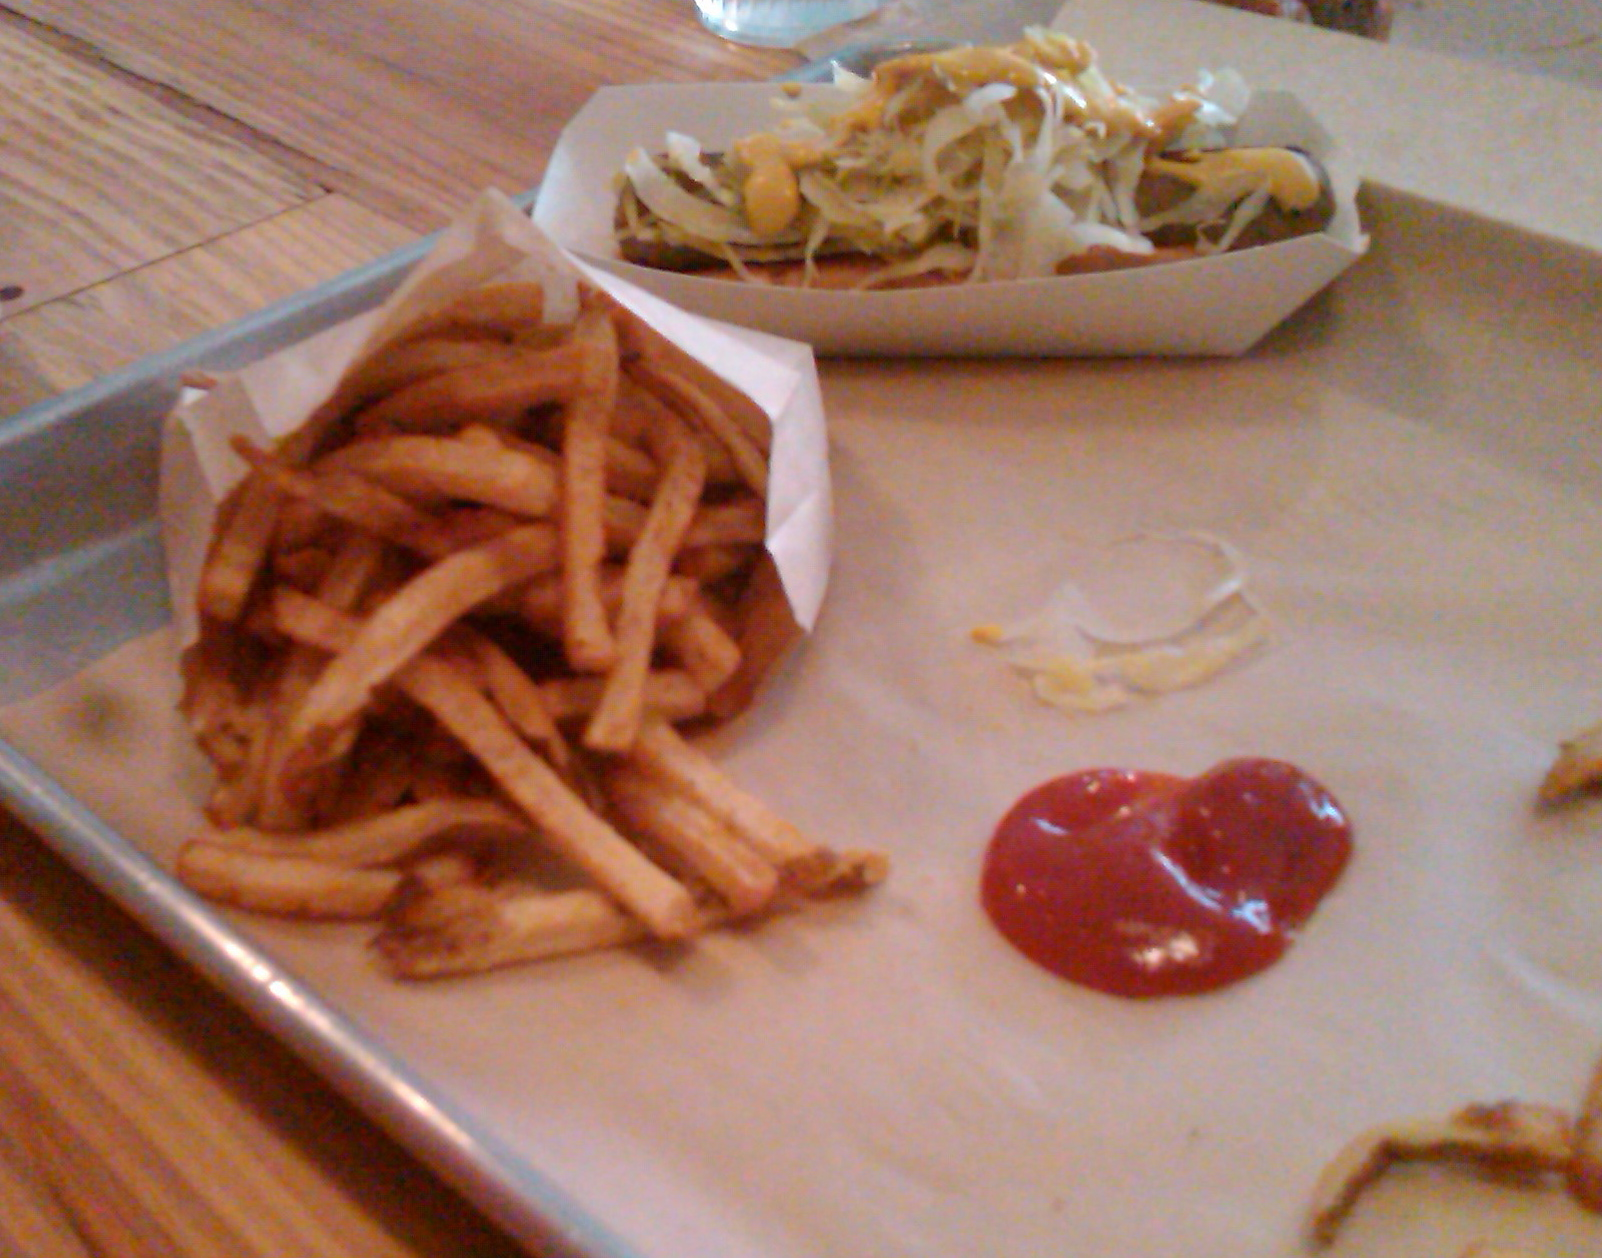 Amazingly Delicious Fries, the perfect compliment to a veggie dog.